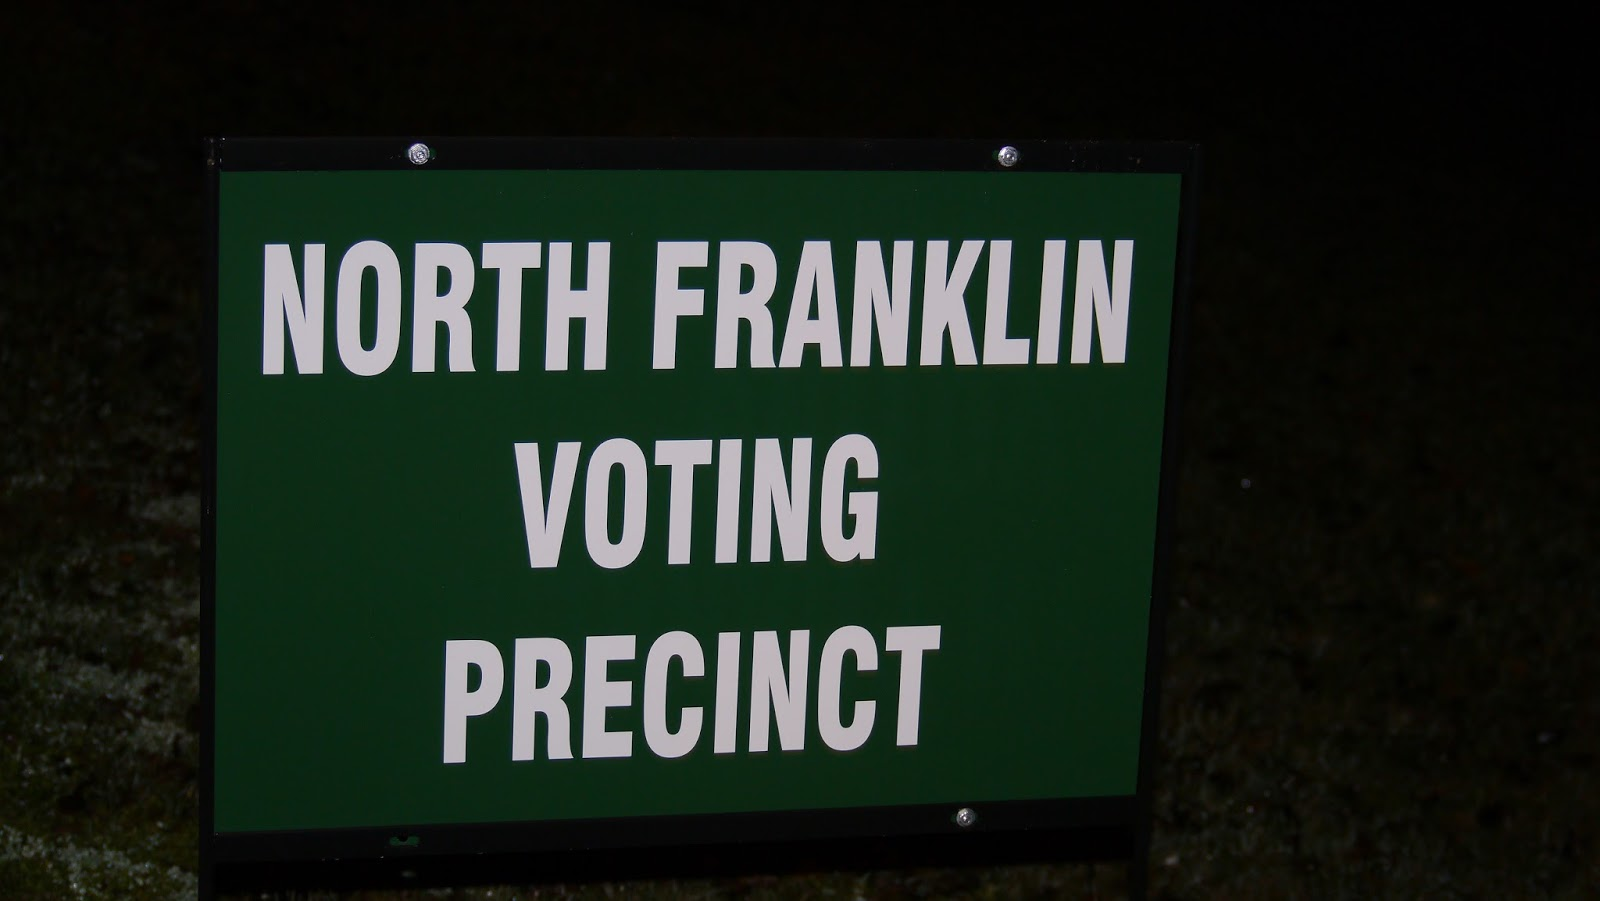 North Franklin Precinct